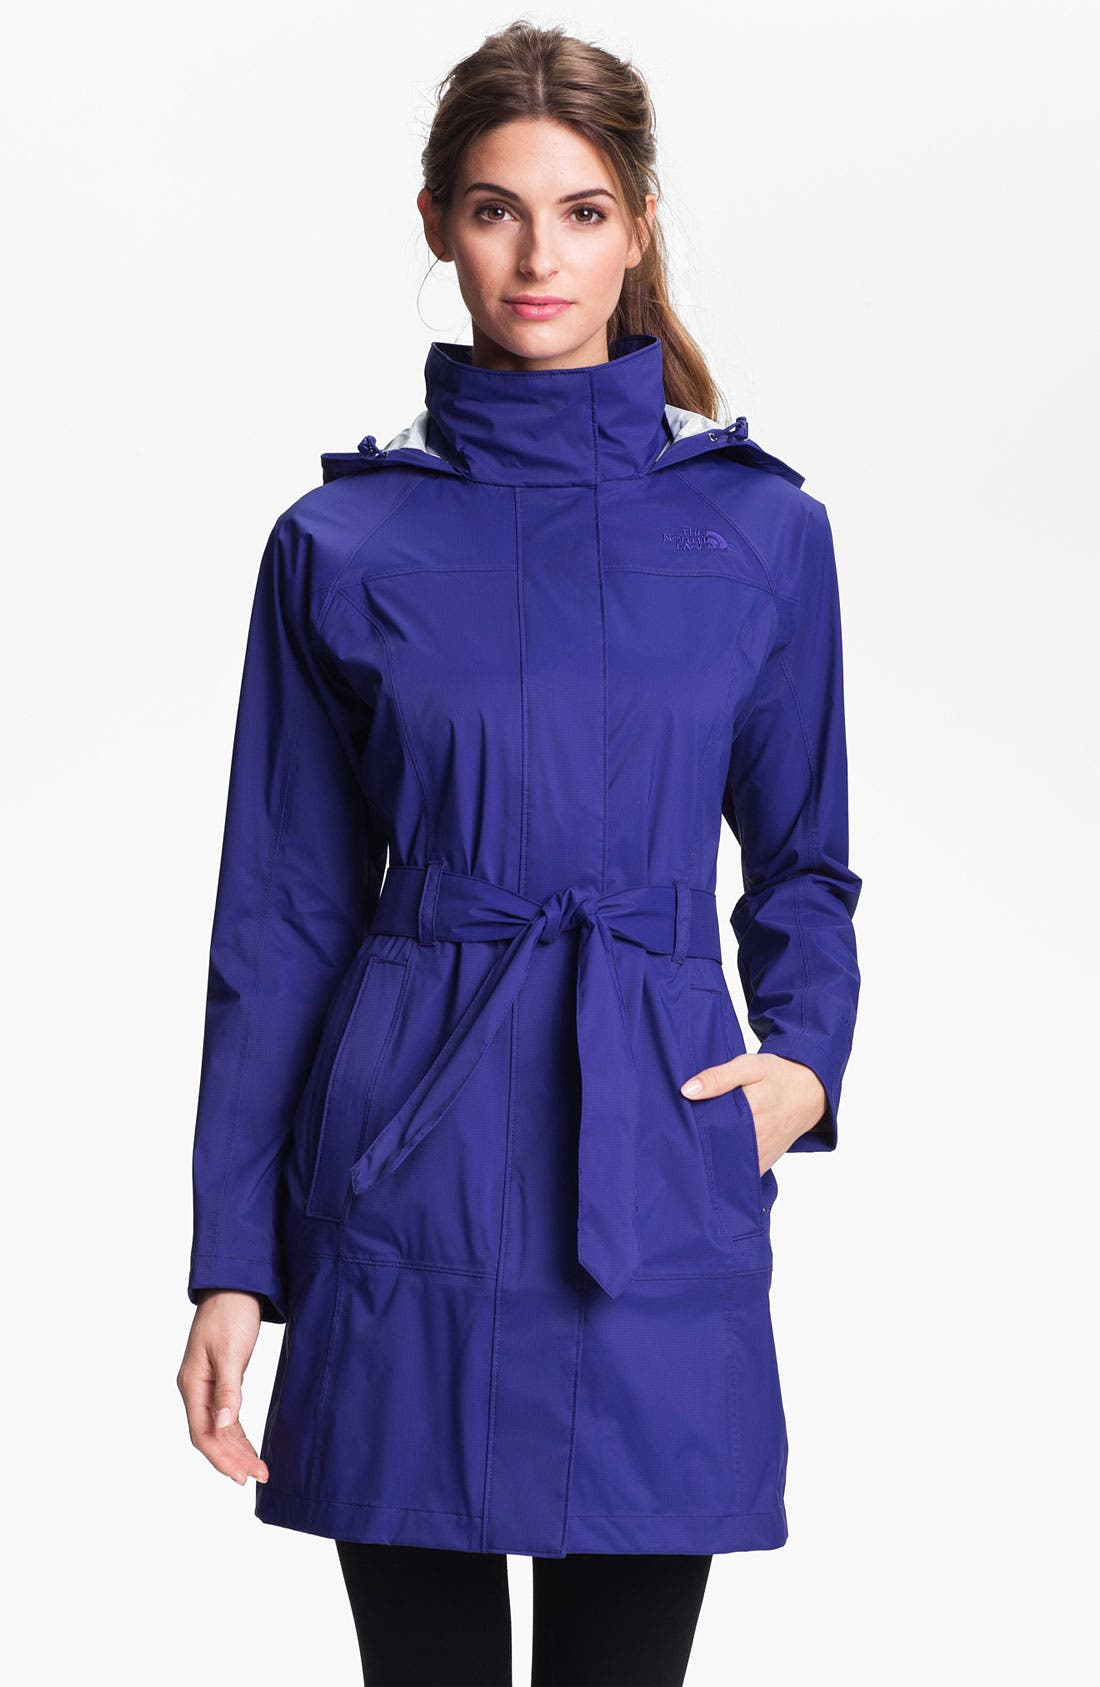 Alternate Image 1 Selected - The North Face 'Grace' Trench Coat